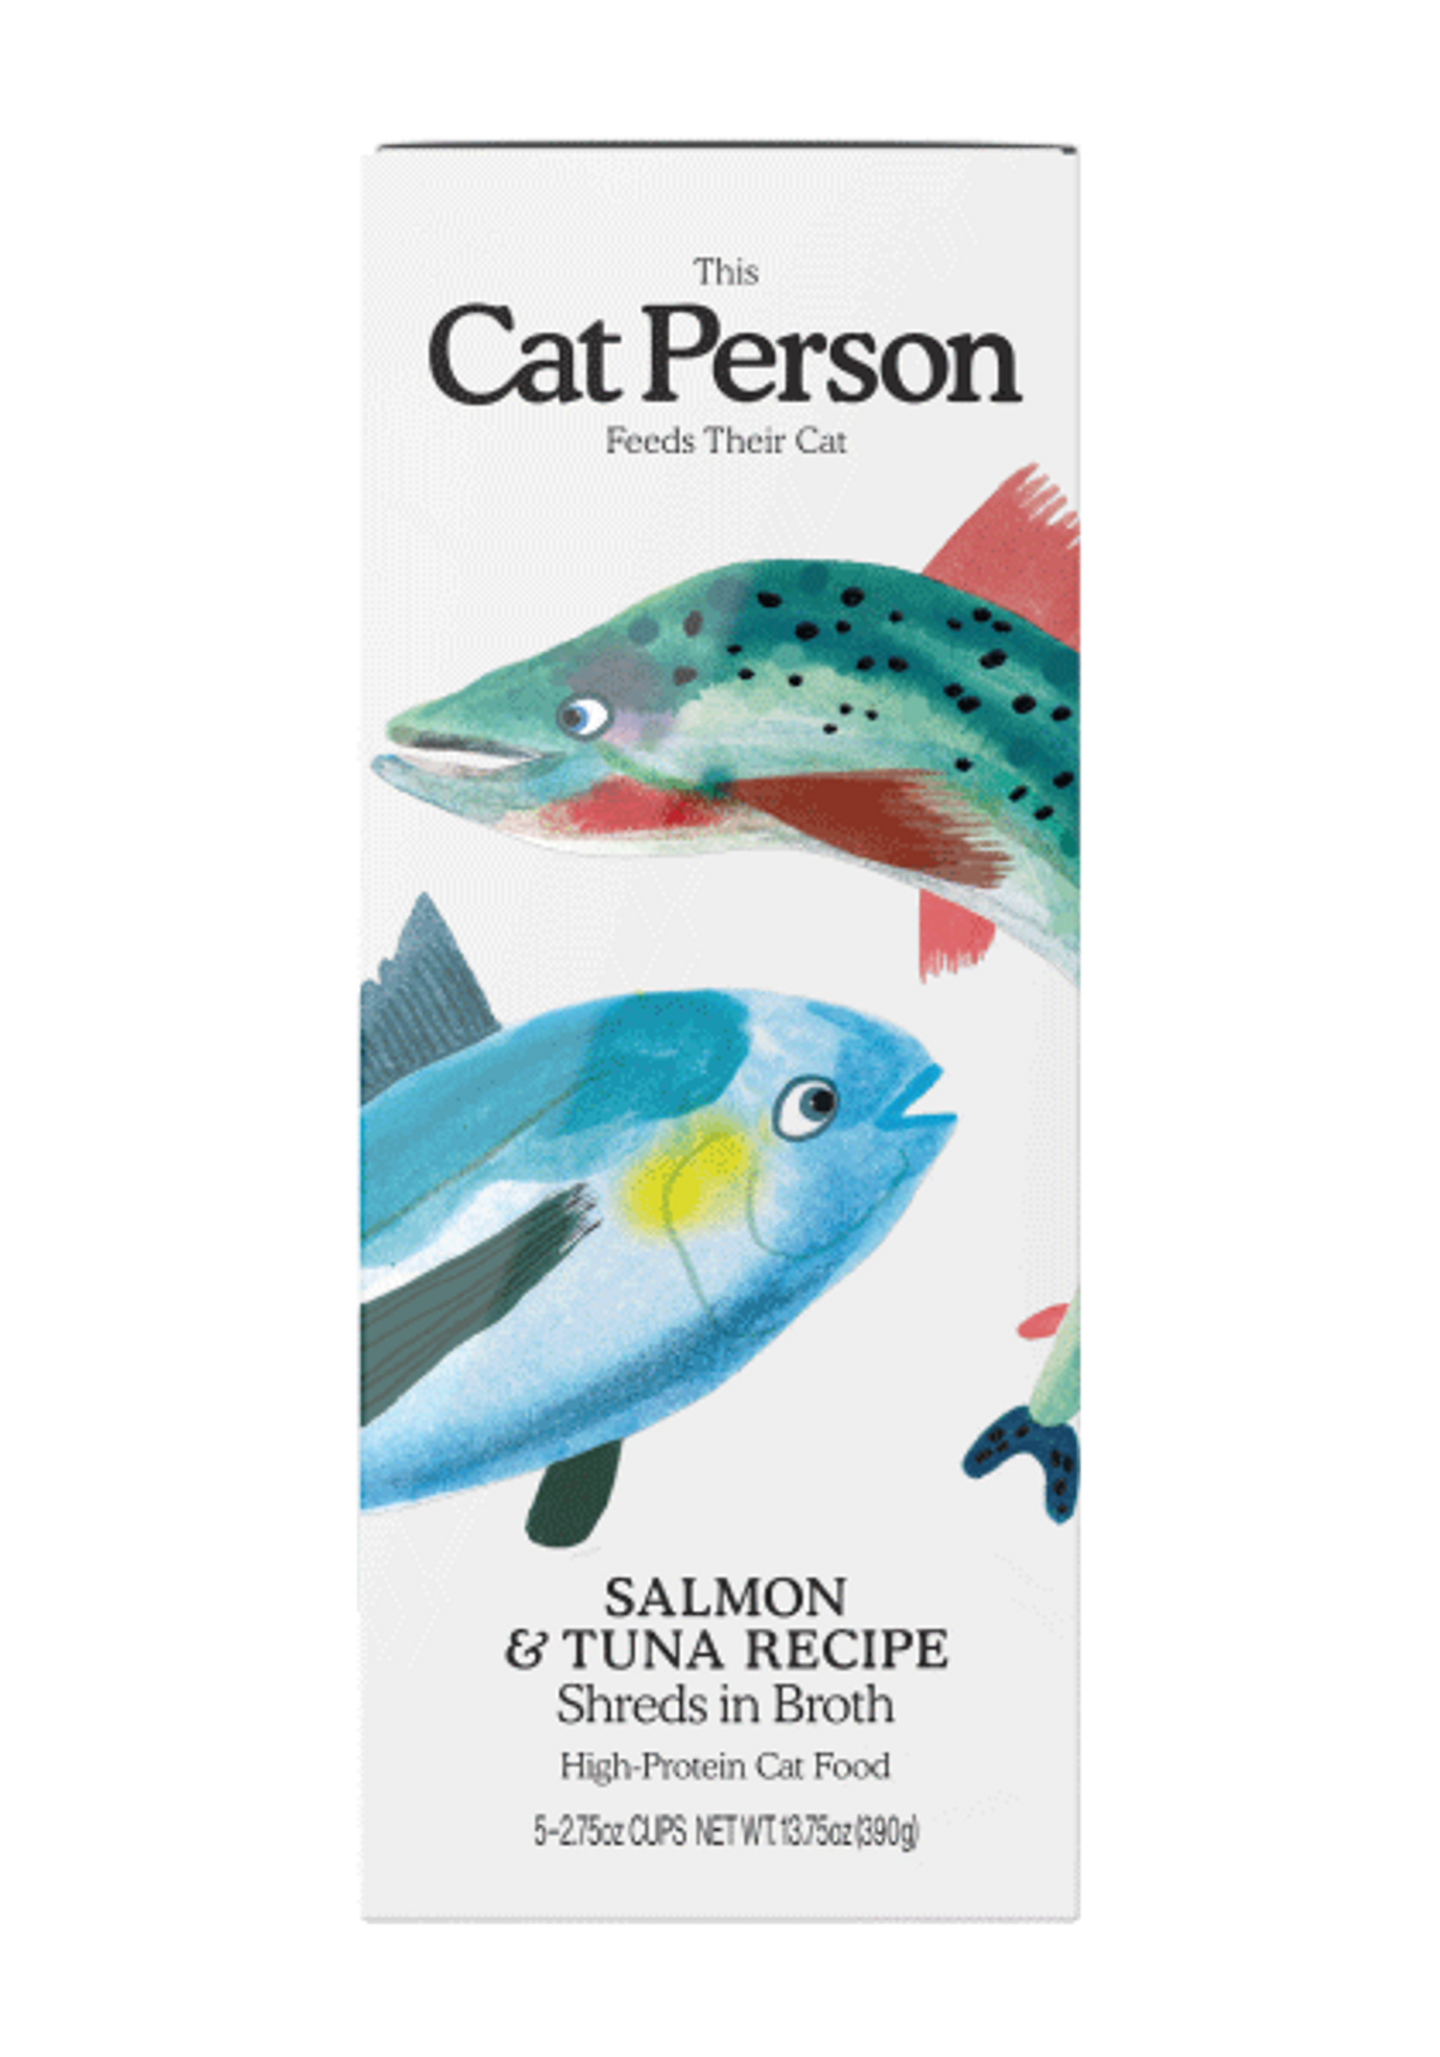 Sleeve of Cat Person salmon & tuna shreds in broth wet food